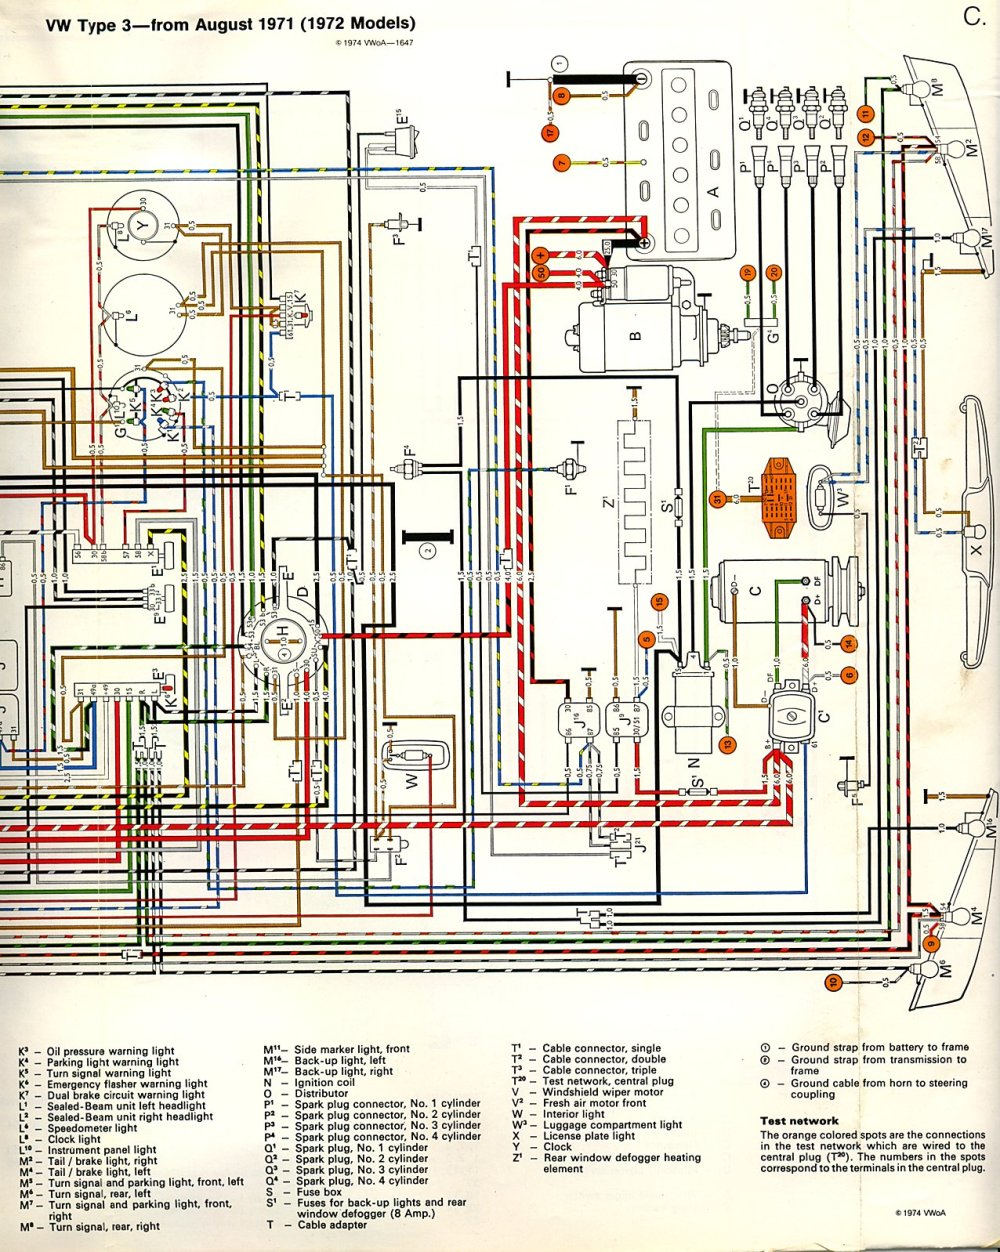 medium resolution of 1964 type 3 vw wiring diagram 29 wiring diagram images wiring diagrams for 2007 volkswagen vw